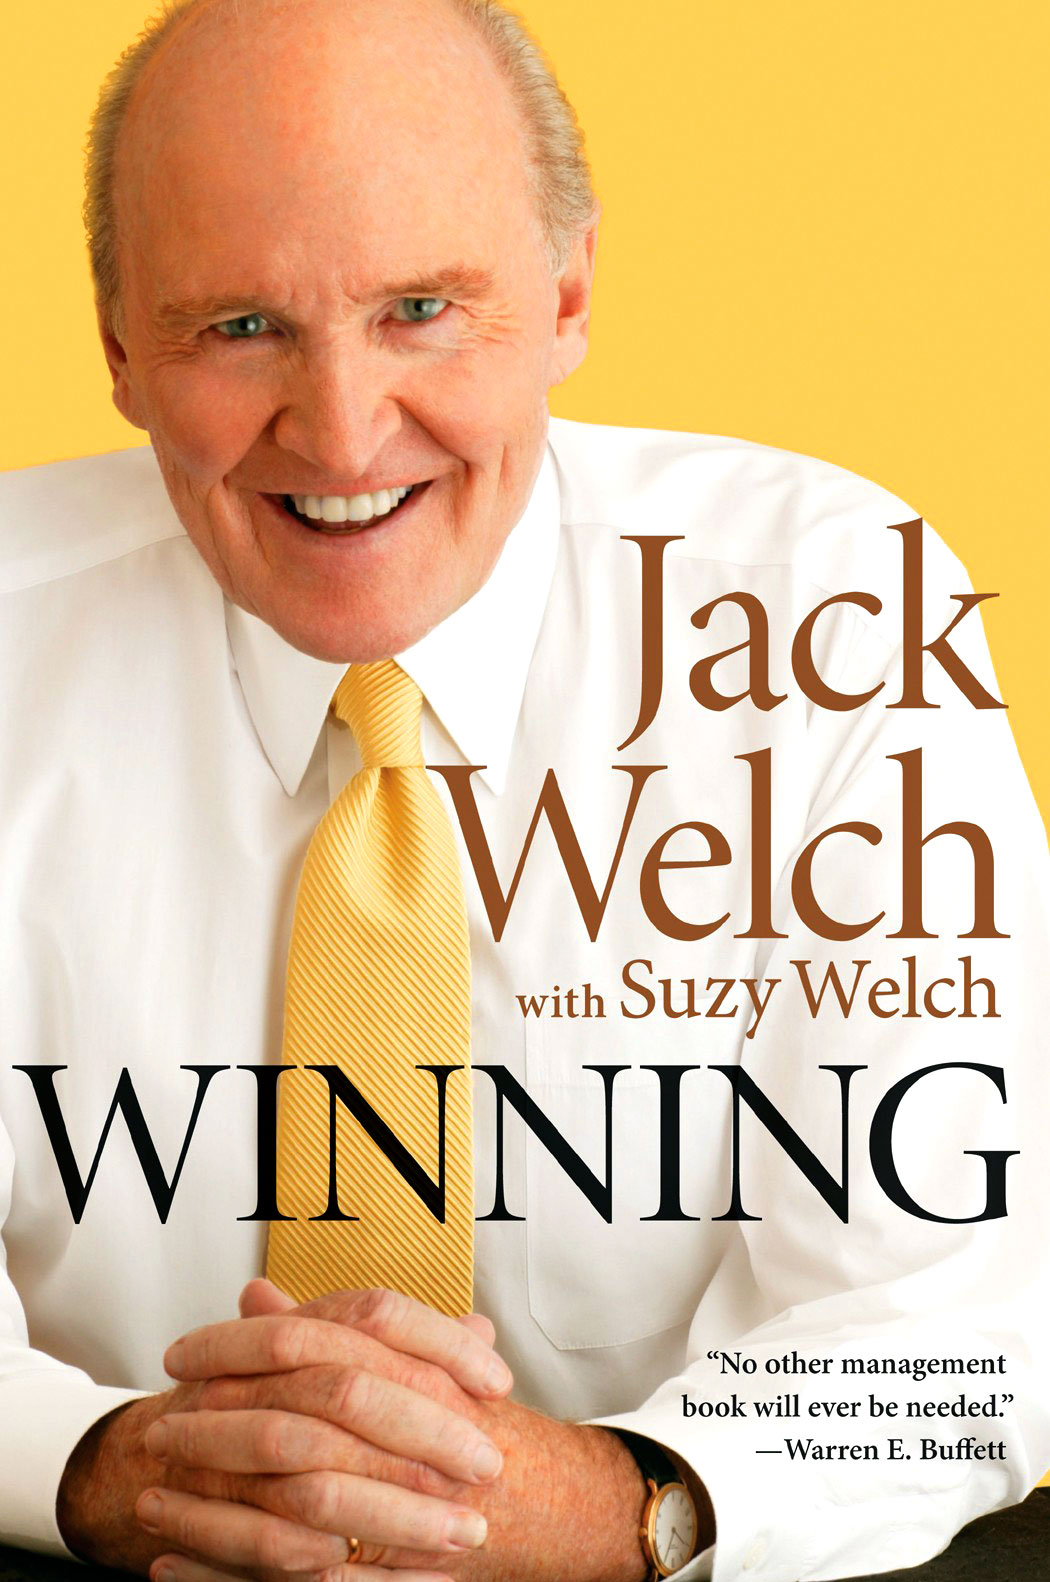 essay jack welch leadership style Leadership is a tough act it's a daily balancing act as a leader, you're expected  to use your insight, experience, and rigor to balance the.